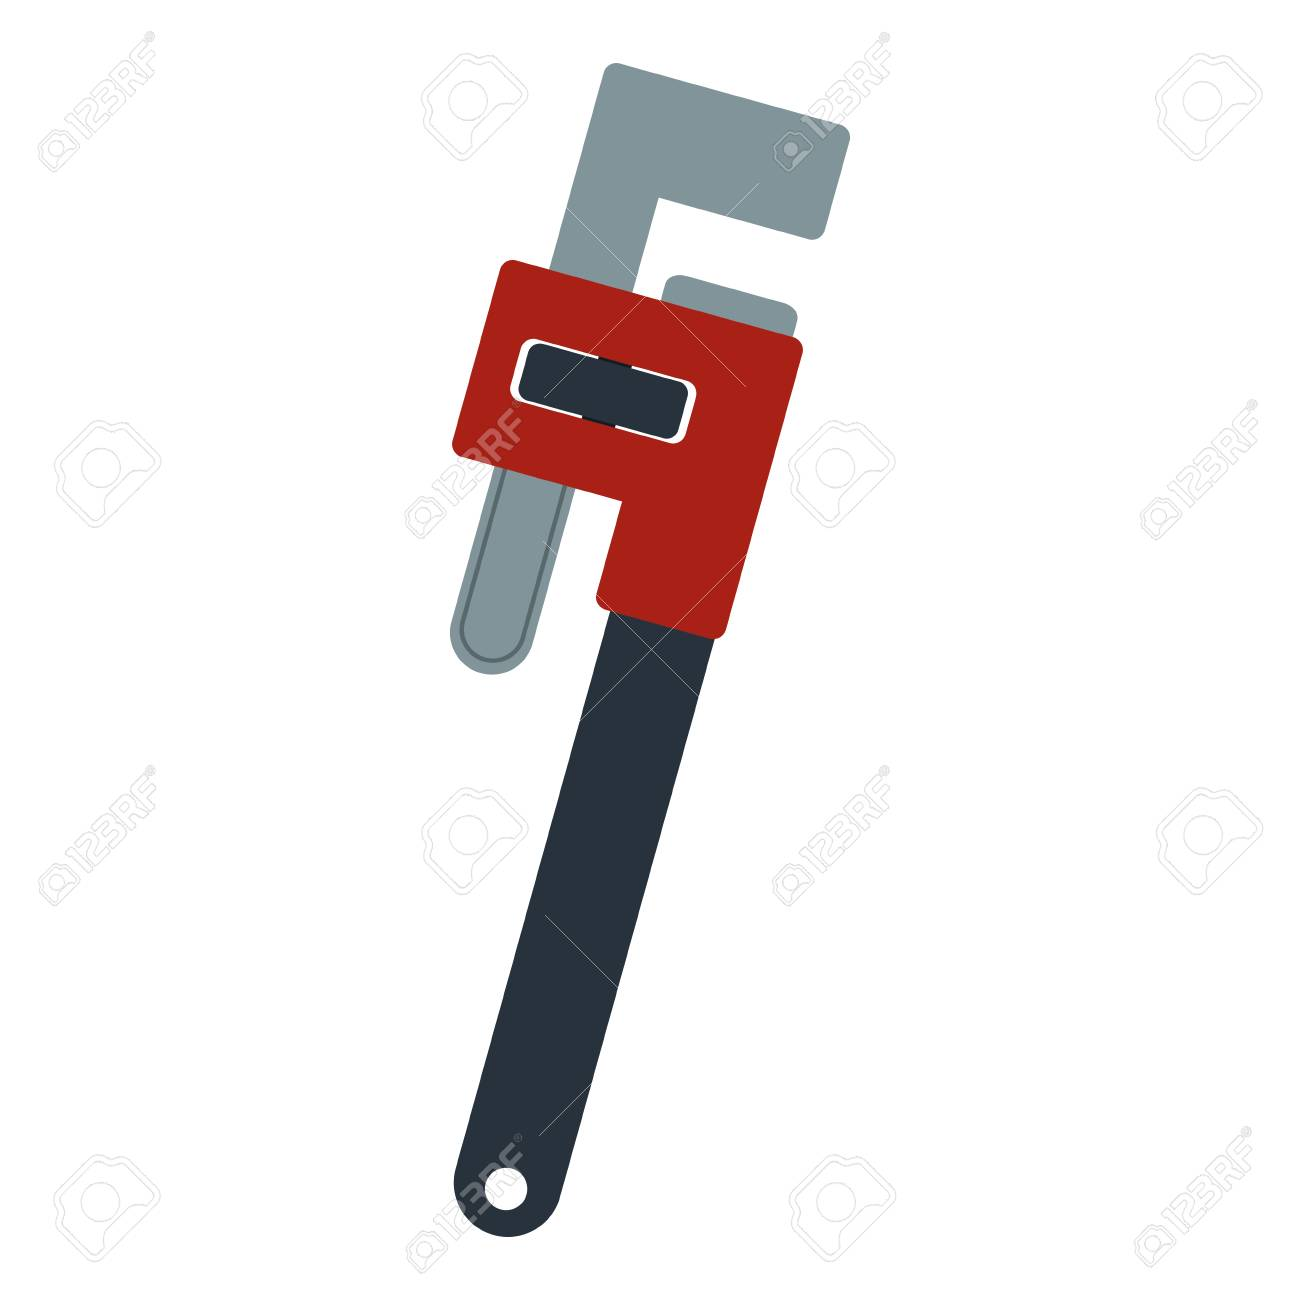 Adjustable Plumbing And Pipe Wrench Tool Repair Vector Illustration ...